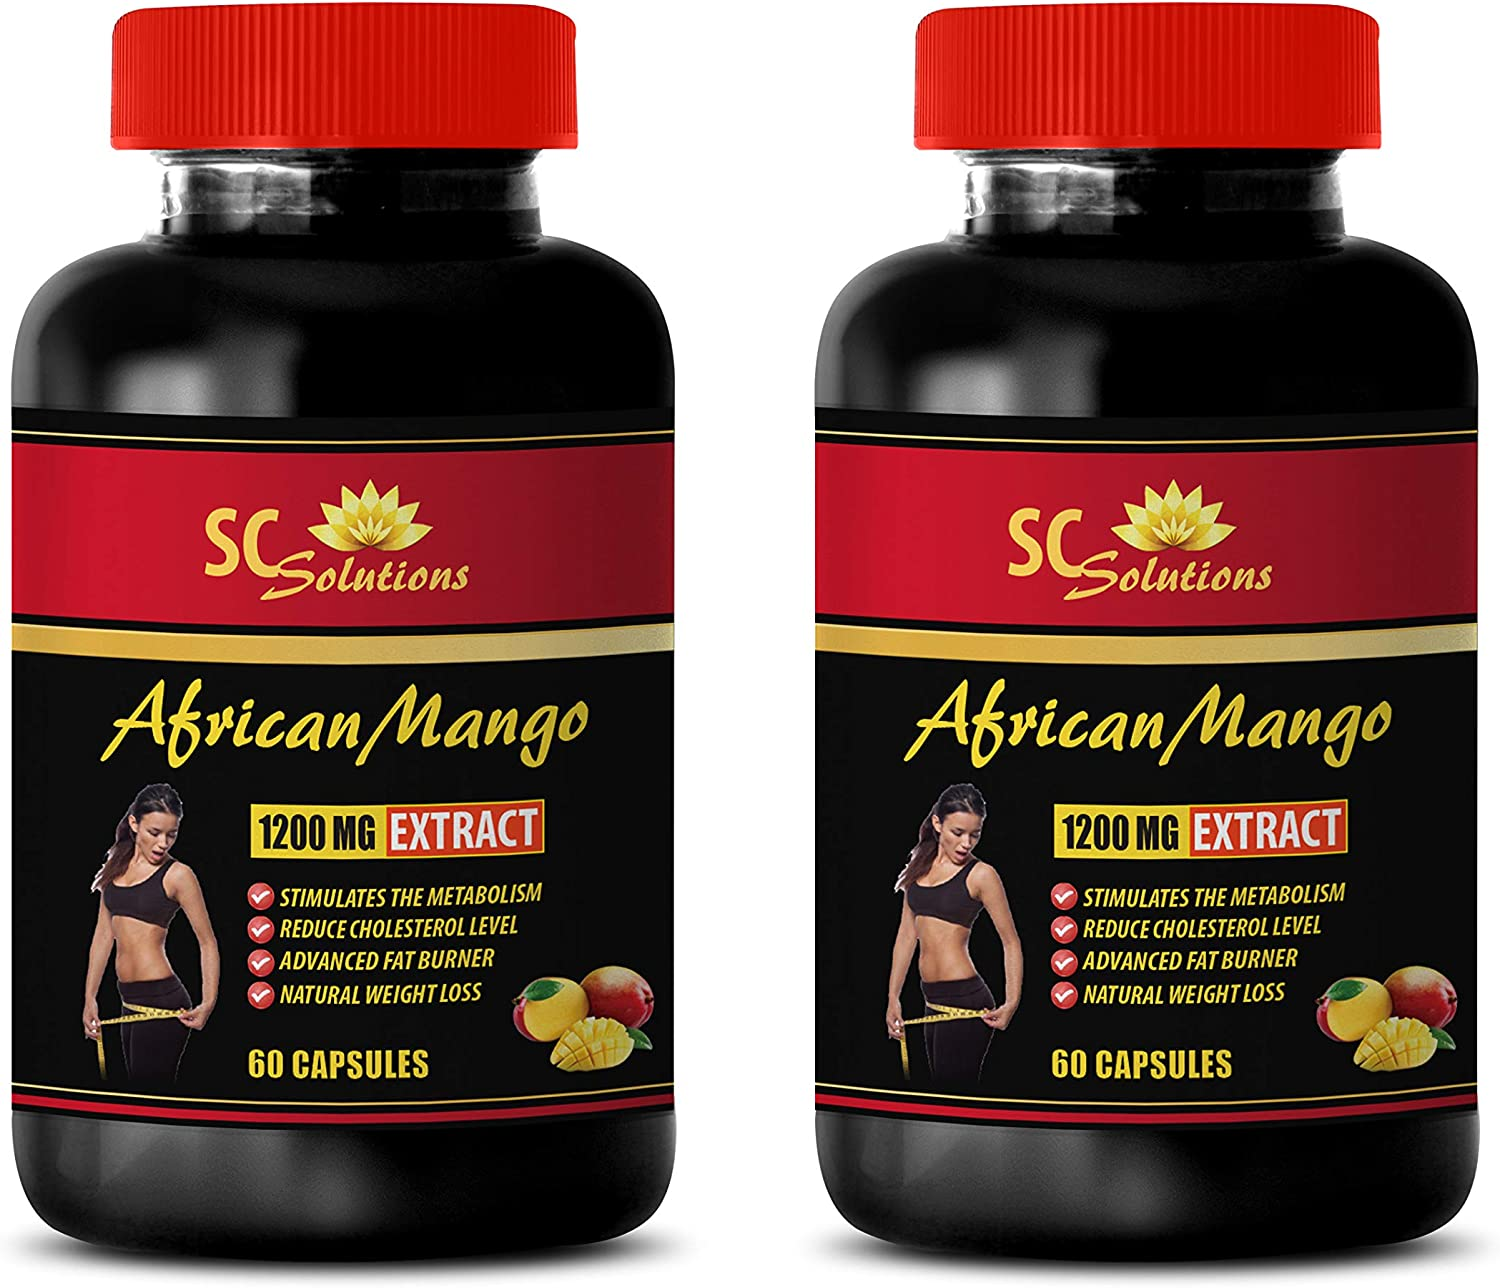 Blood Sugar Reducer - African Mango Extract 1200MG - African Mango Seed Extract Powder - 2 Bottles (120 Capsules)